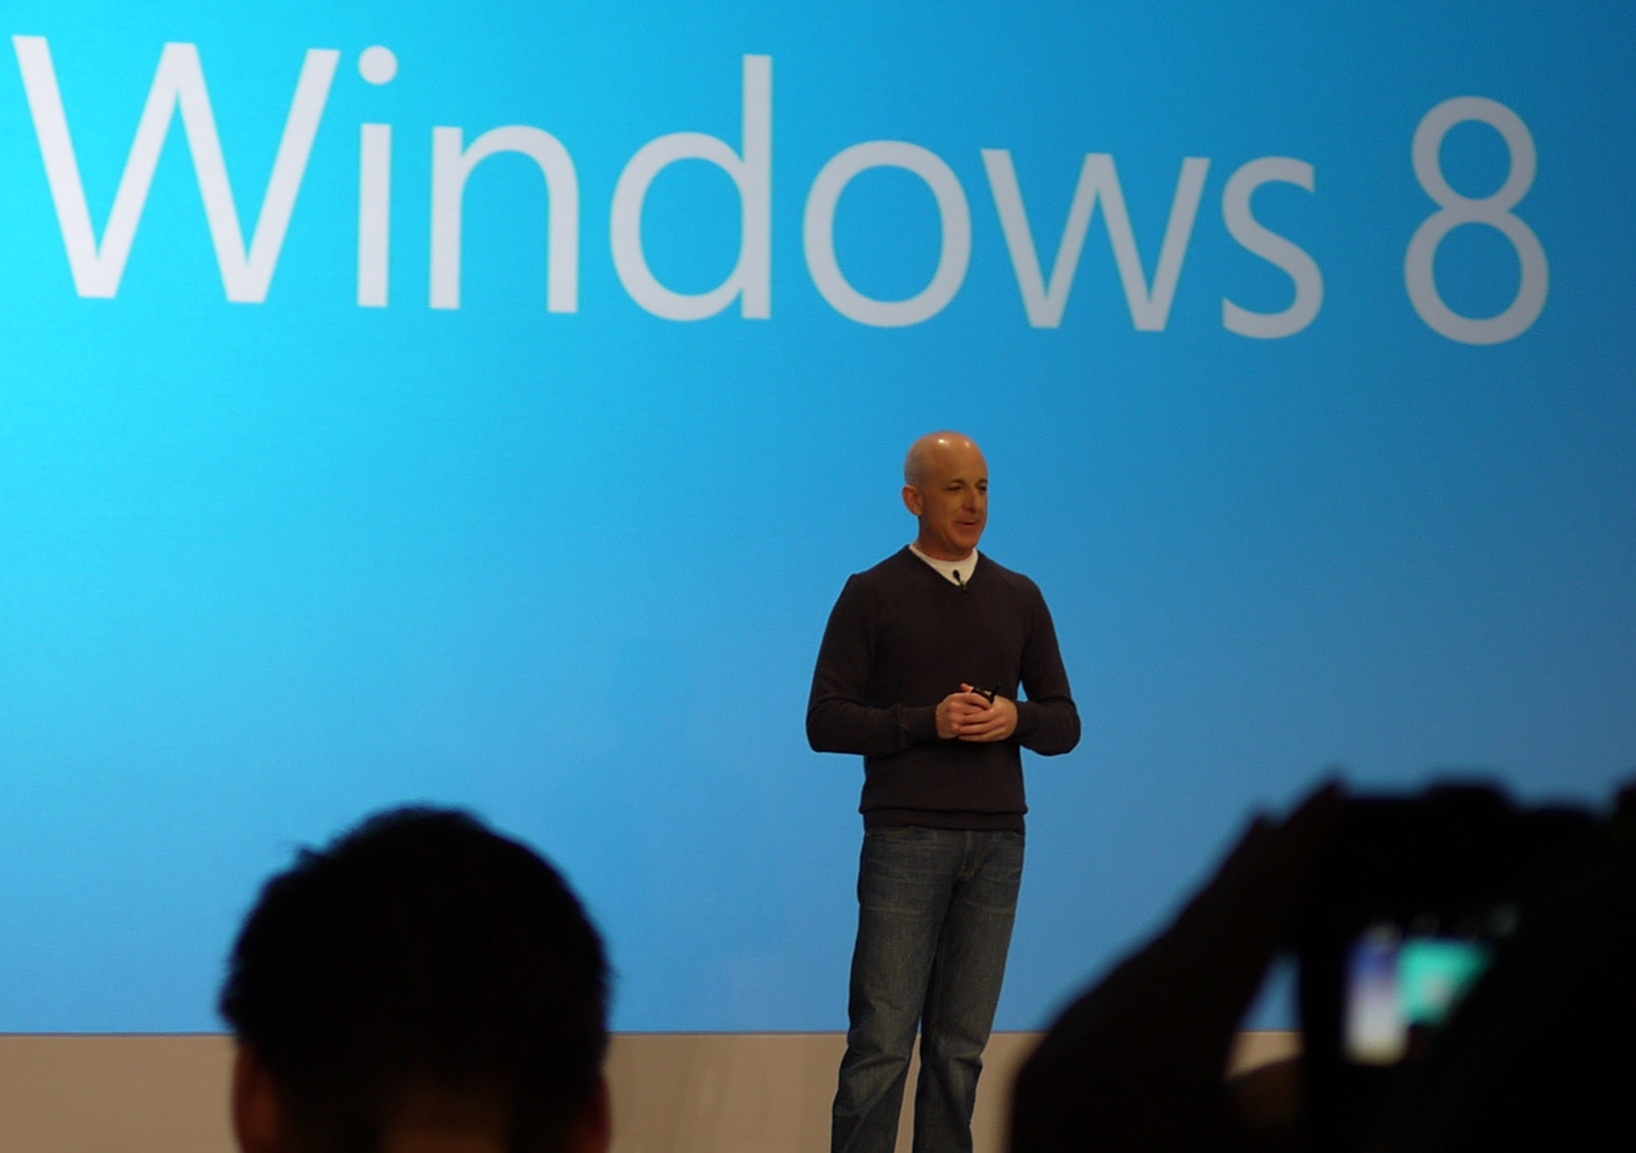 Microsoft: We've Sold 40 Million Windows 8 Licenses to Date